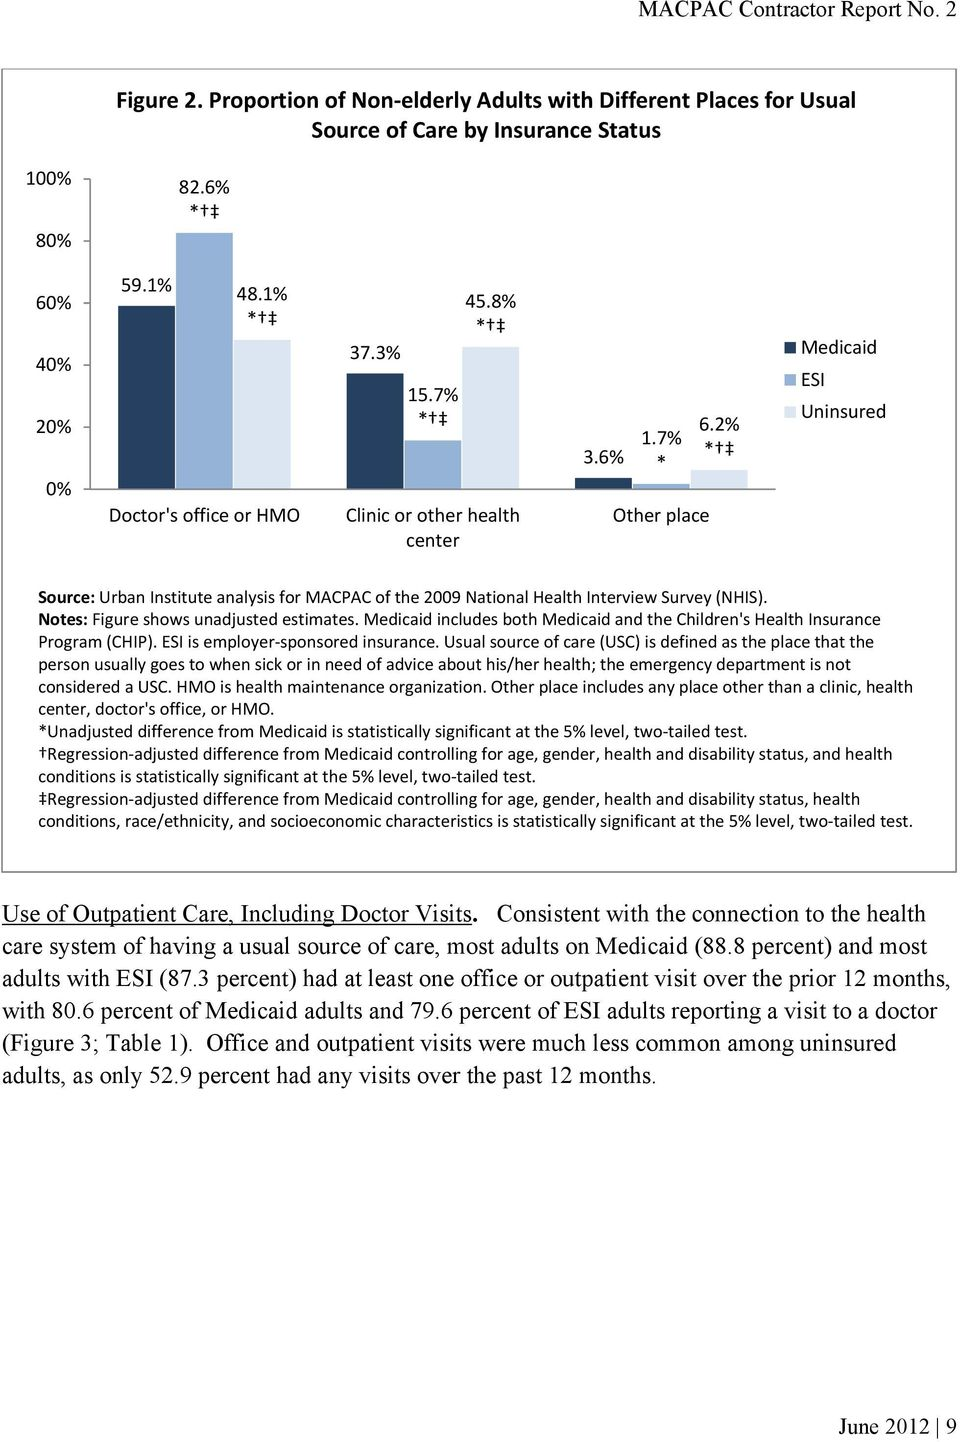 Notes: Figure shows unadjusted estimates. Medicaid includes both Medicaid and the Children's Health Insurance Program (CHIP). ESI is employer sponsored insurance.